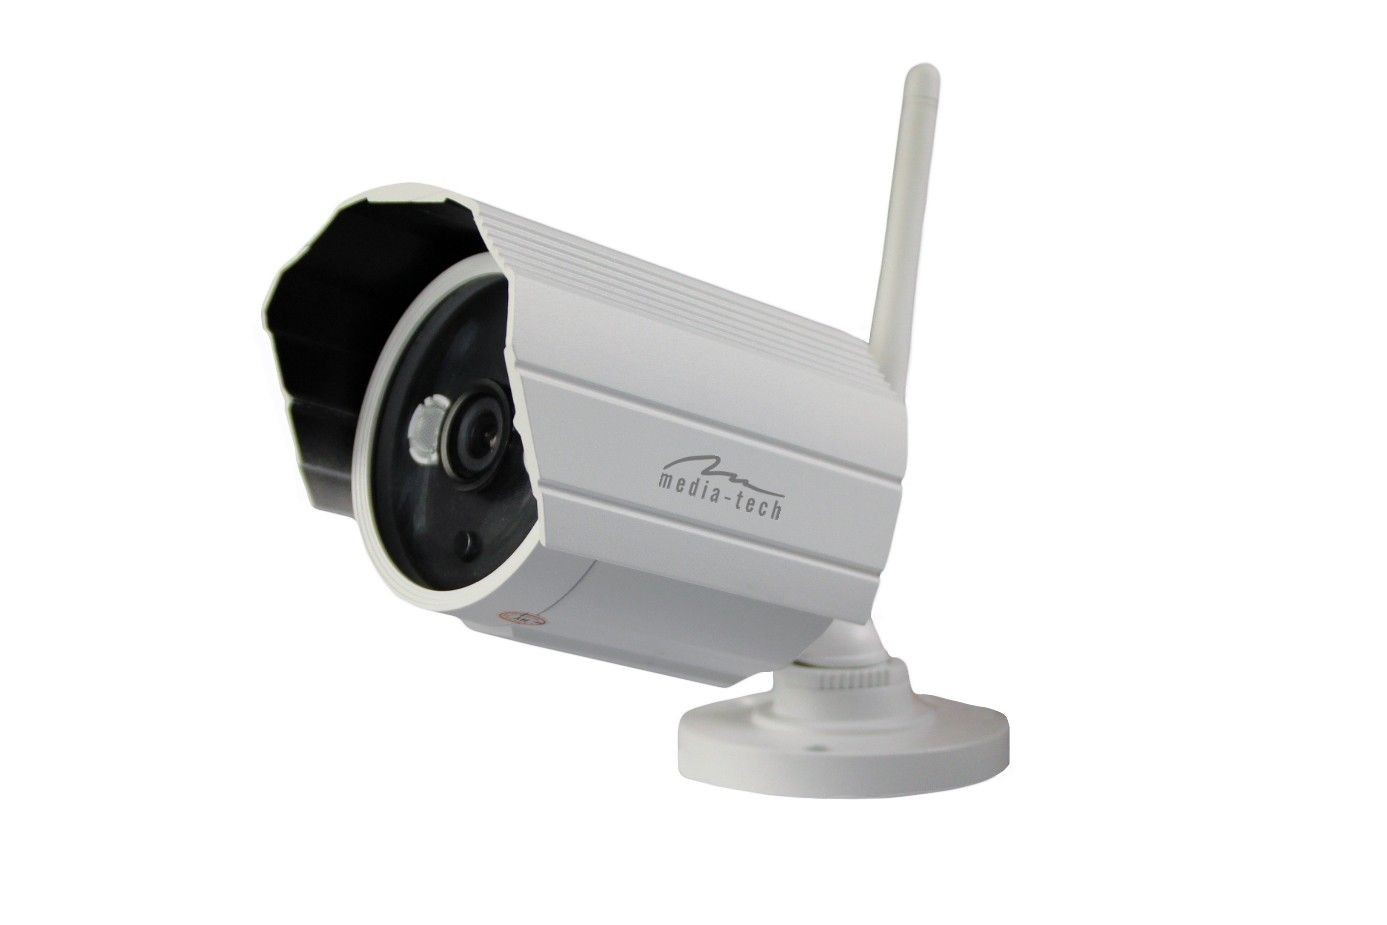 Media-Tech OUTDOOR SECURECAM HD - Zewnętrzna kamera IP 720p + WIFI